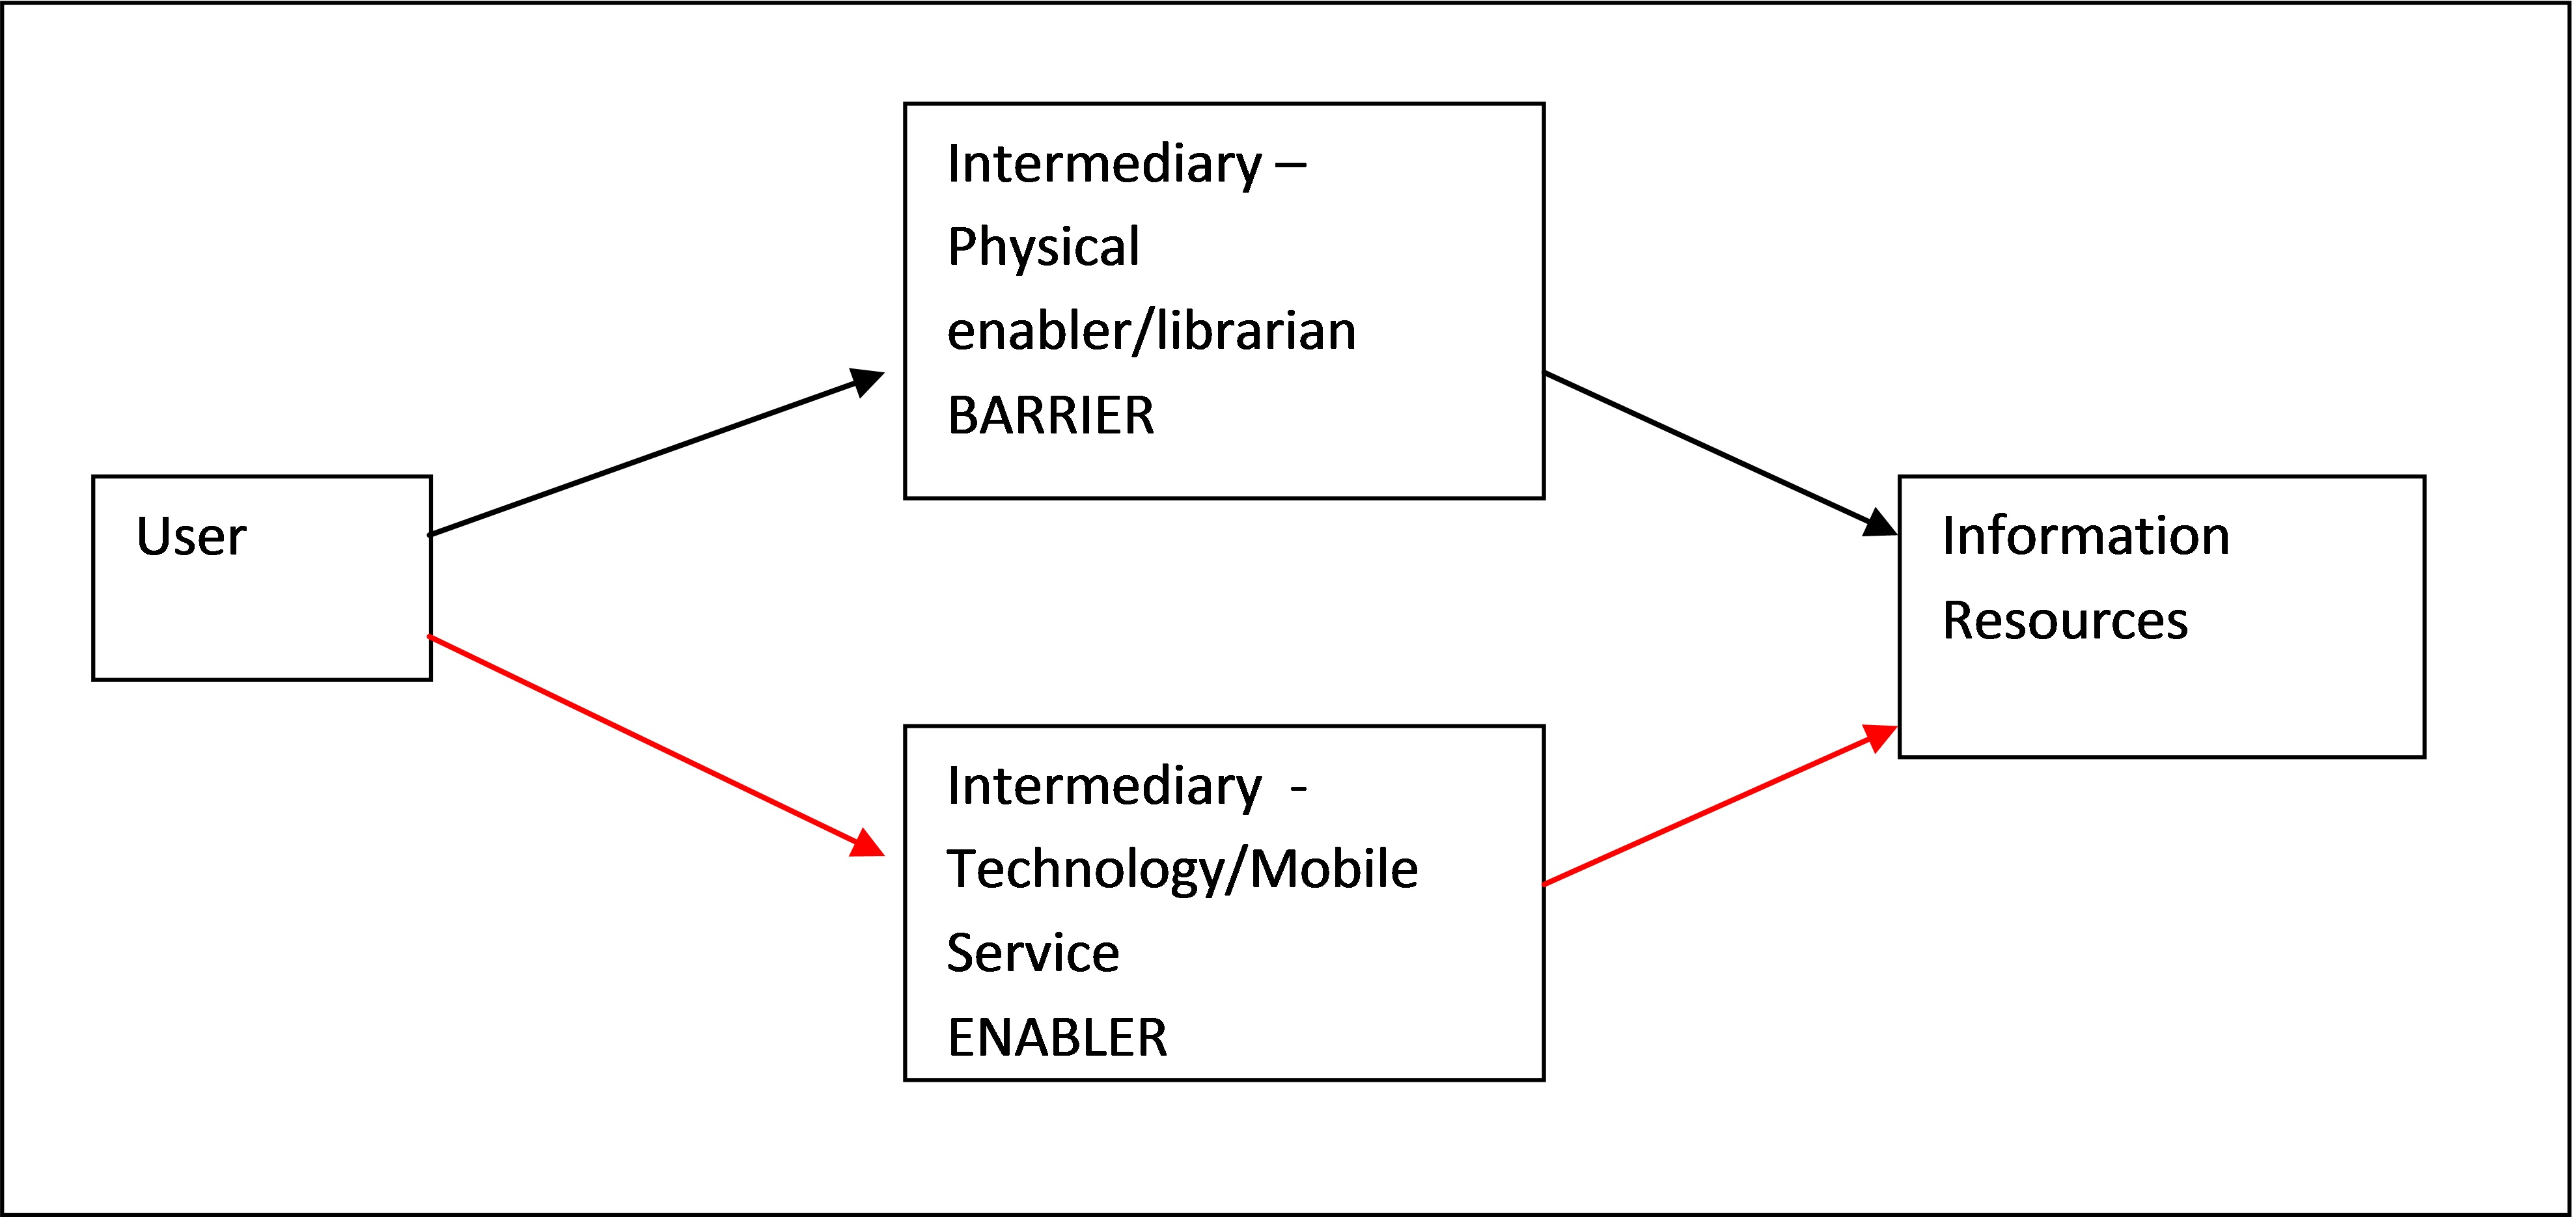 Figure 6:  The role of the Intermediary in allowing the user to access information resources (adapted from Wilson's model)